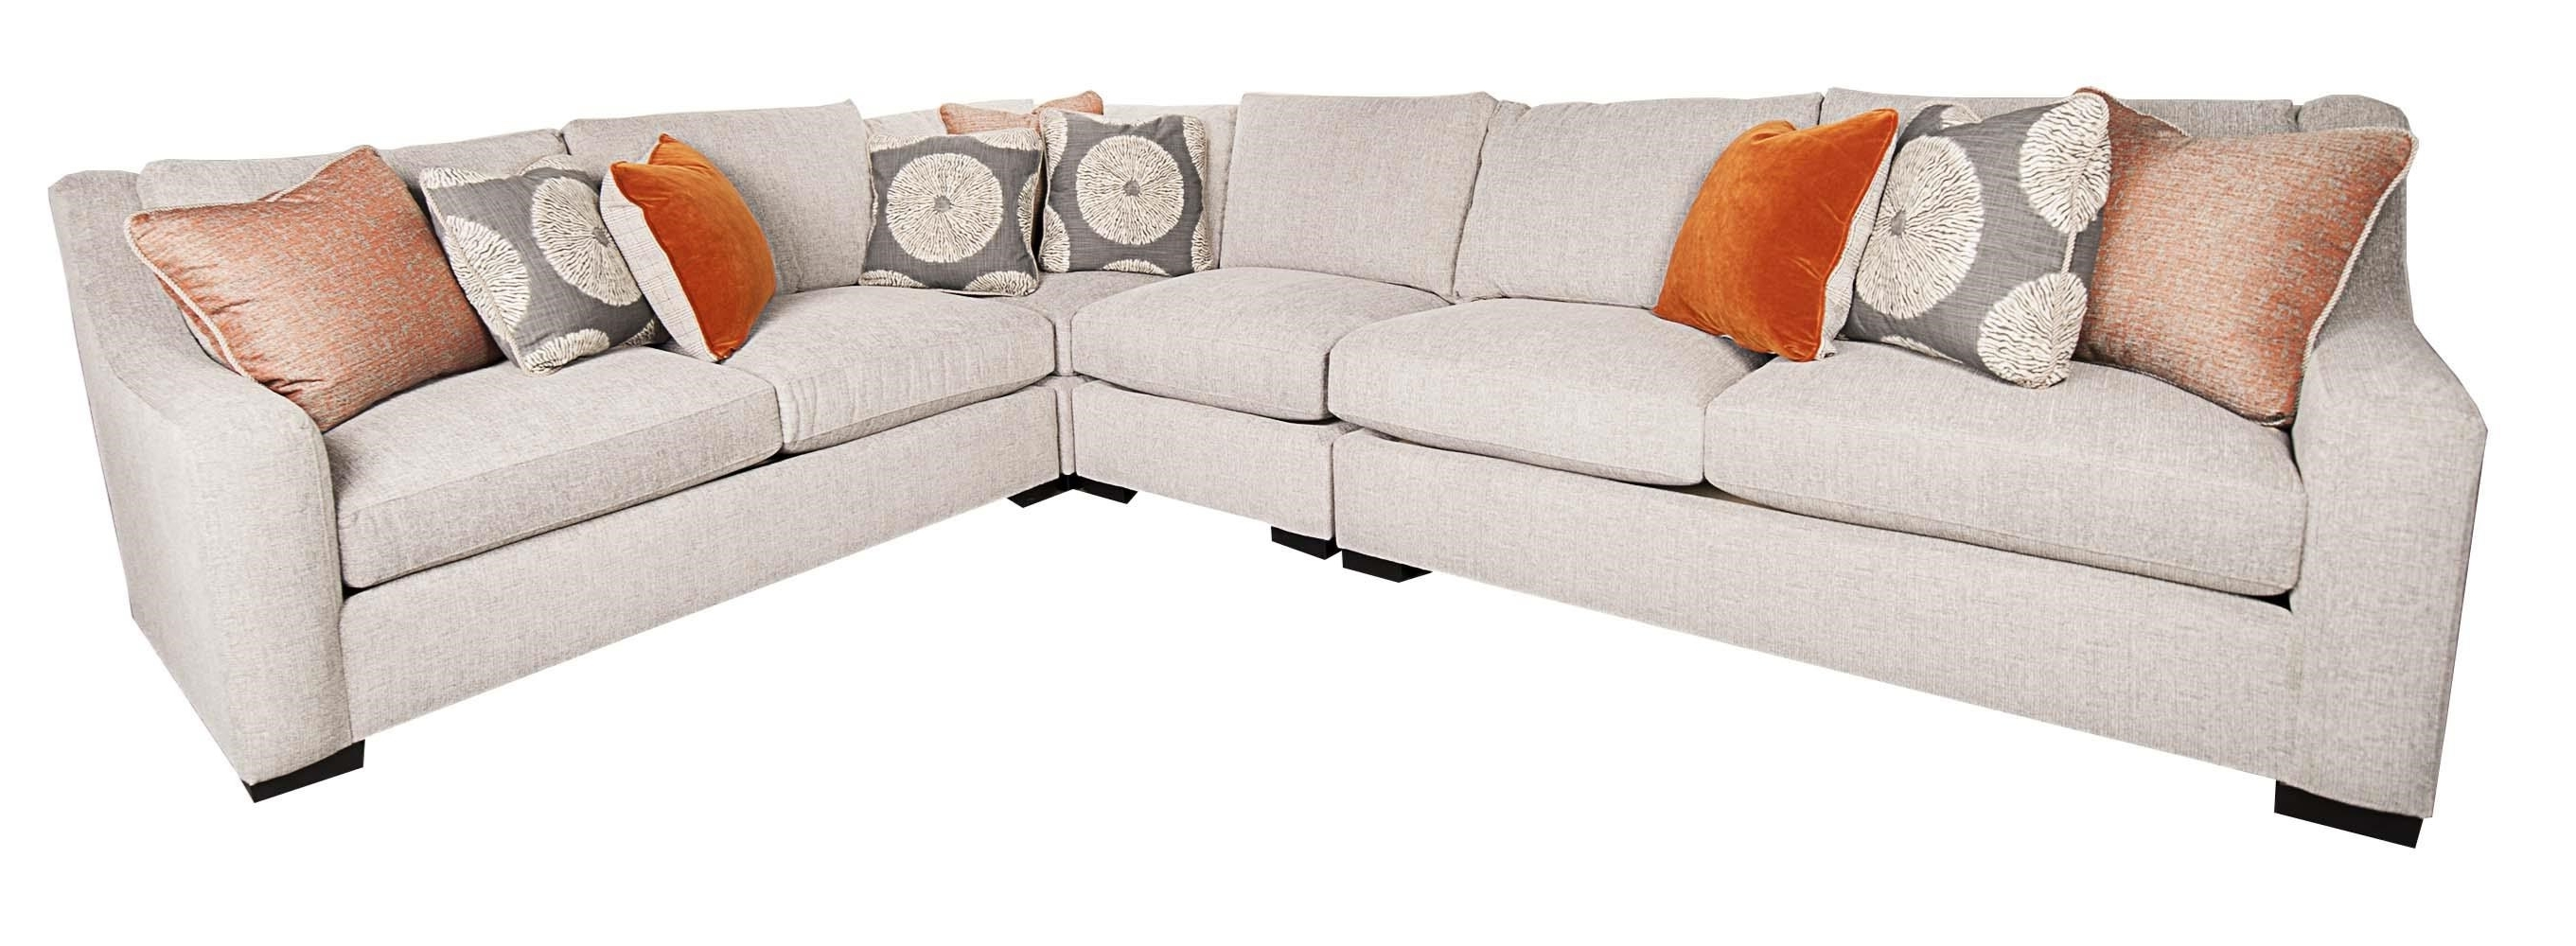 Latest Bernhardt Germain 4 Piece Sectional (View 7 of 15)